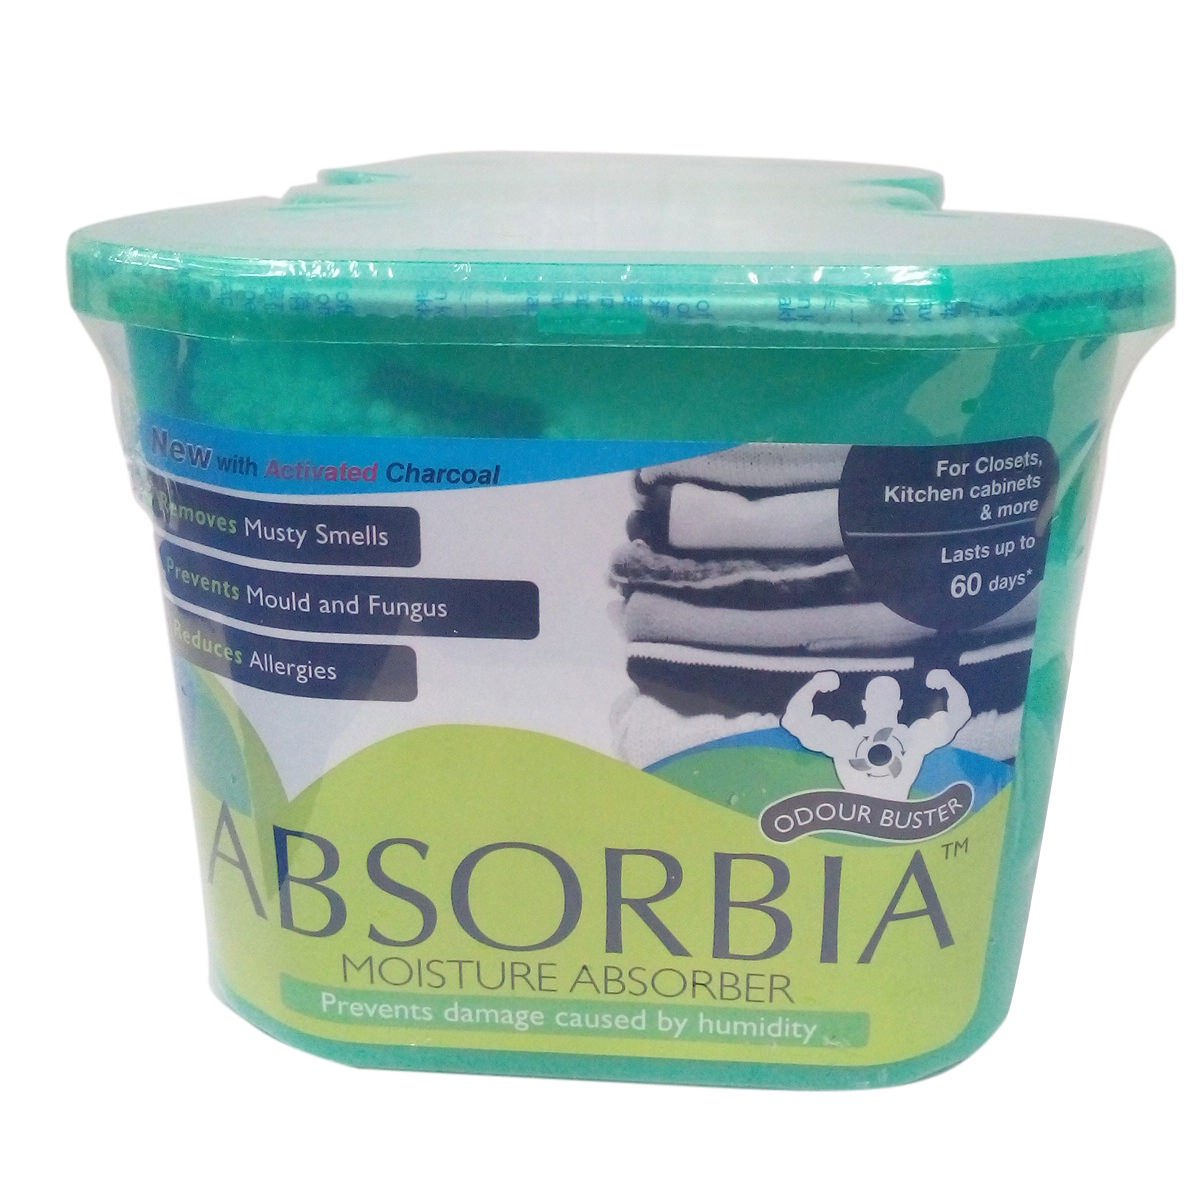 Absorbia Moisture Absorber, 3 x 300g Combo Pack: Amazon.in